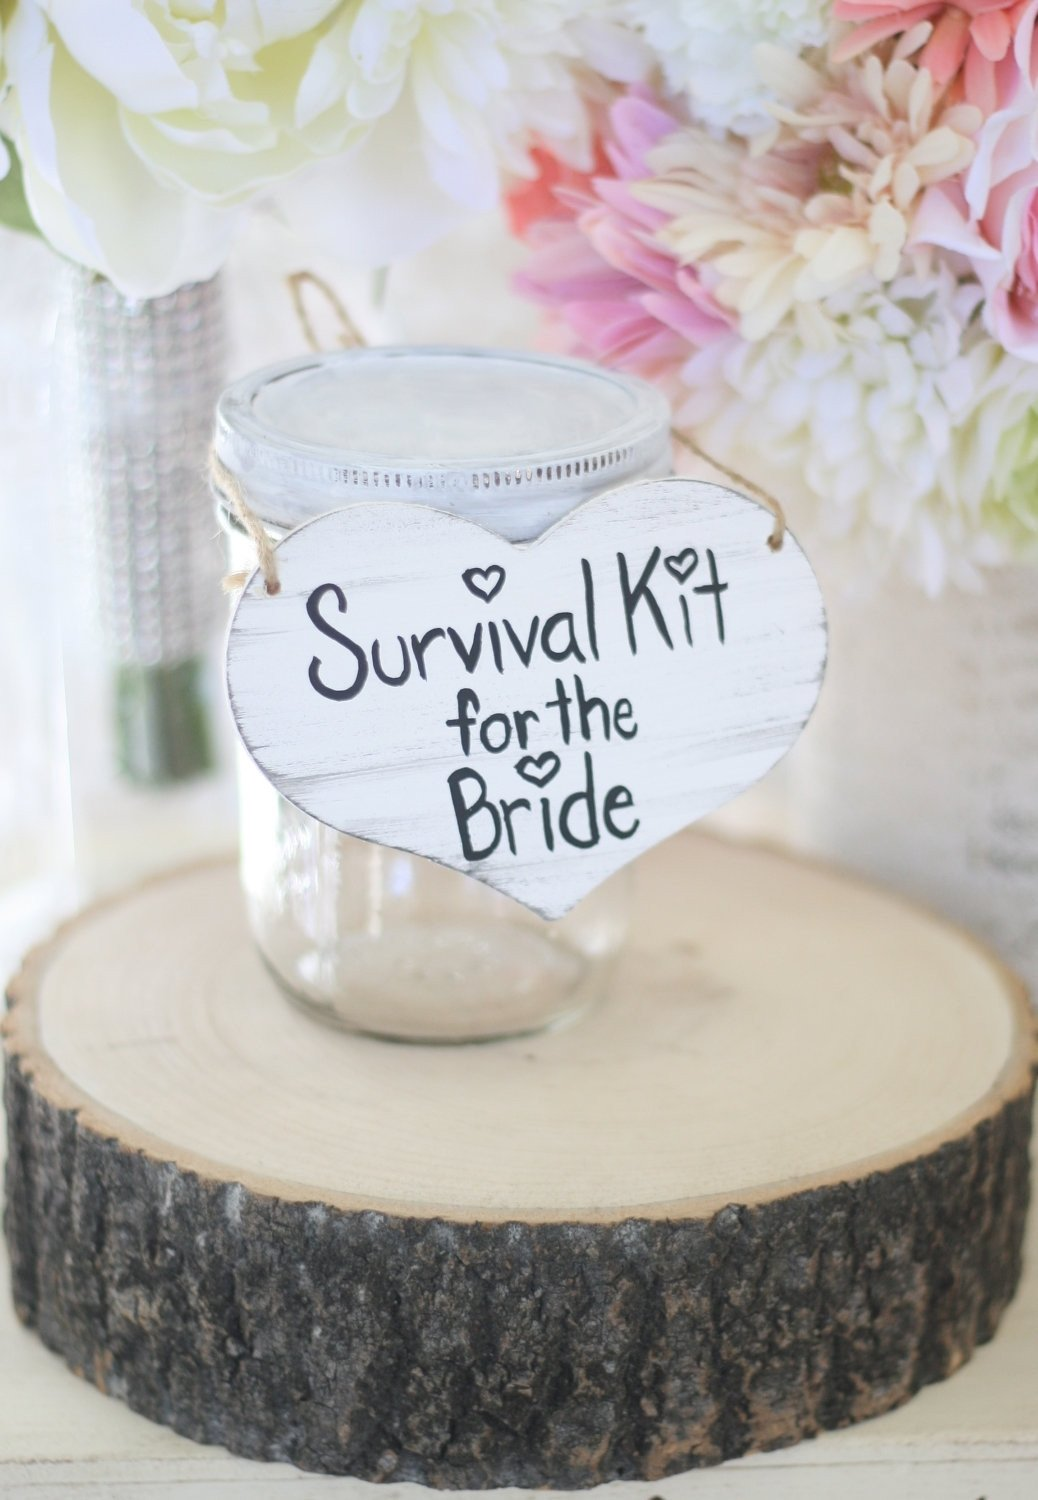 10 trendy bridal shower gift ideas for bride unique wedding shower gifts nice small for bride